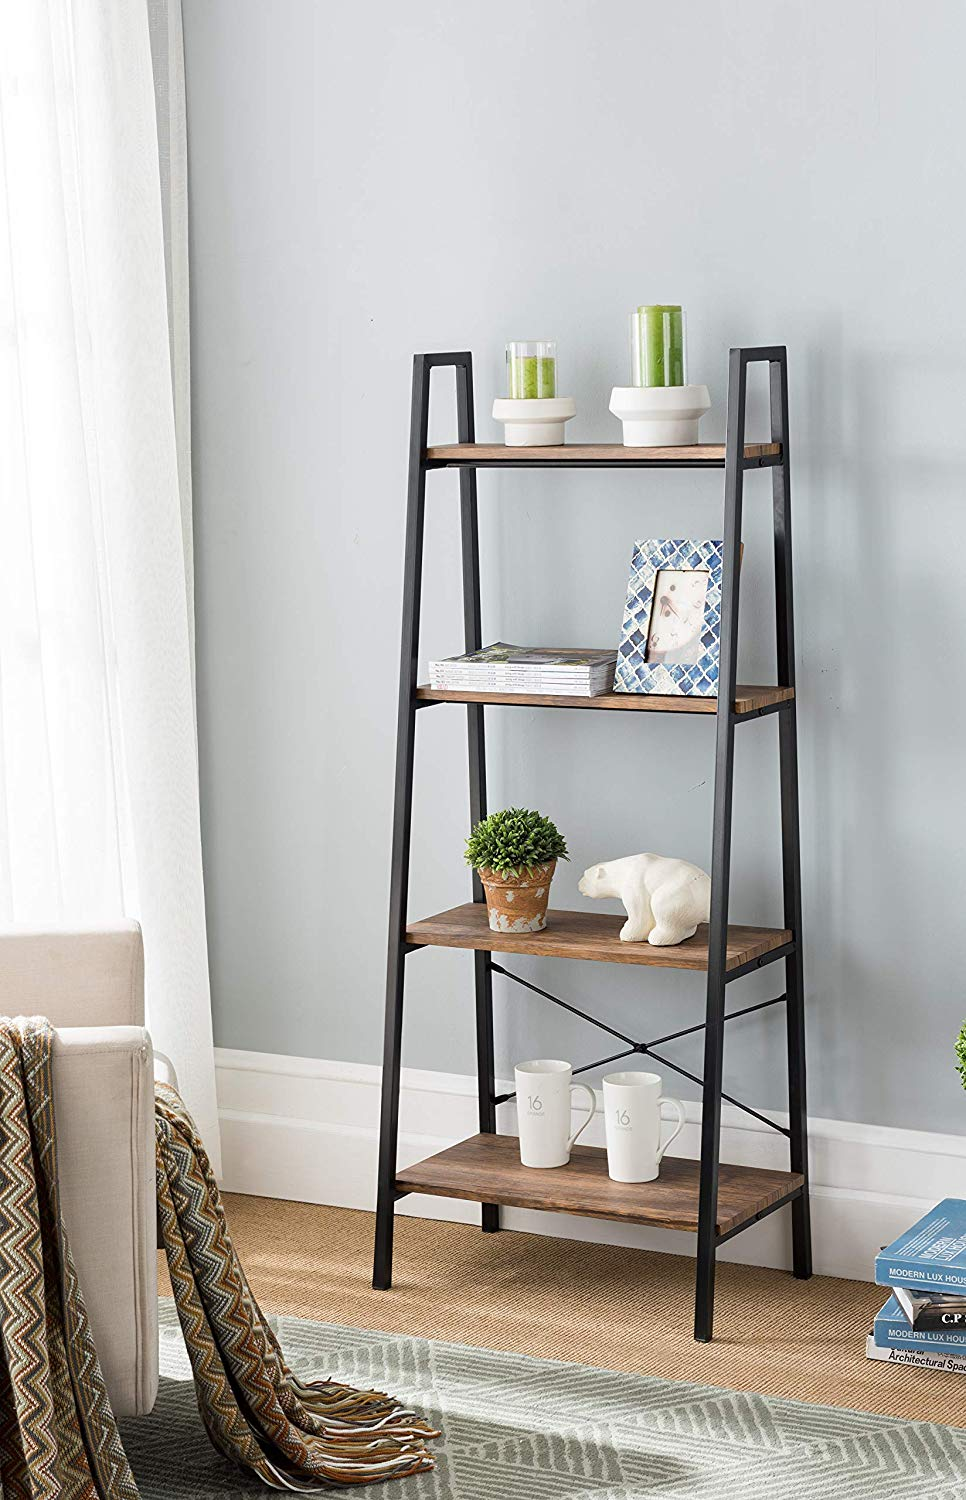 Get Quotations None Vintage Finish Metal Frame 4 Tier Ladder Shelf Bookcase Bookshelf Accent Plant Stand